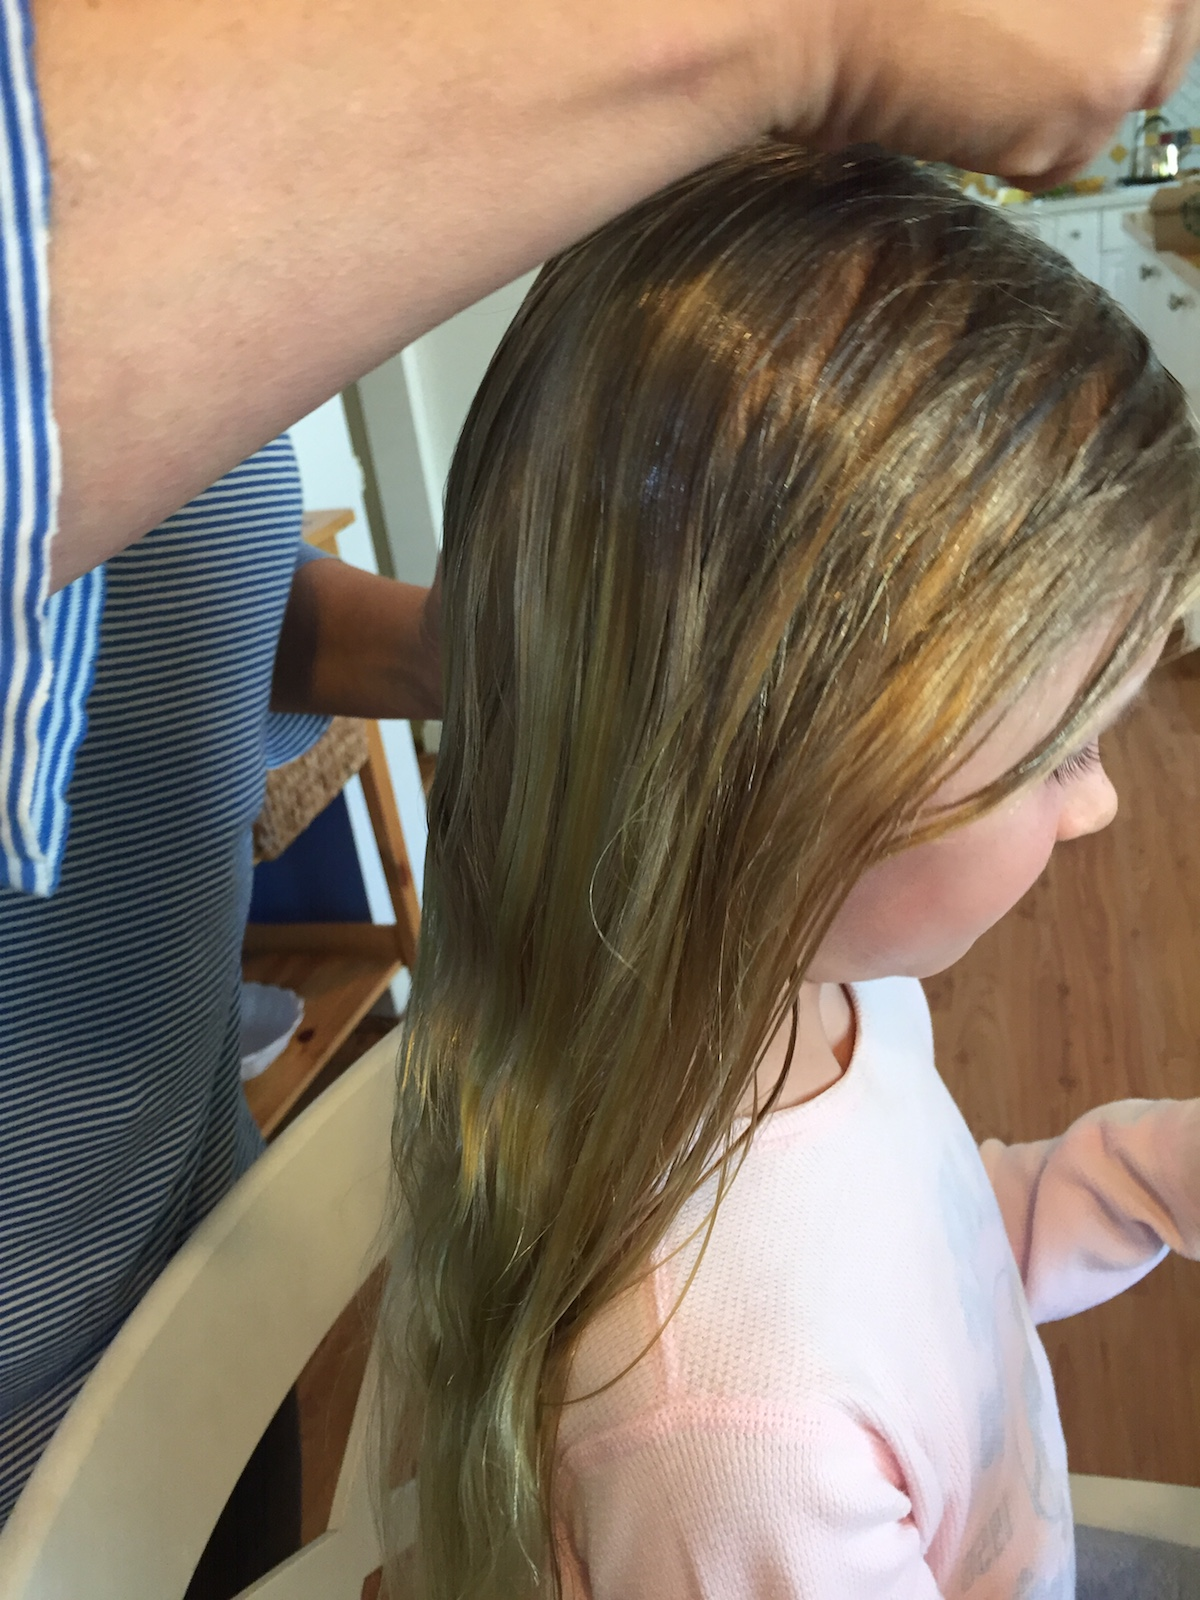 young girl receiving lice treatment southern california